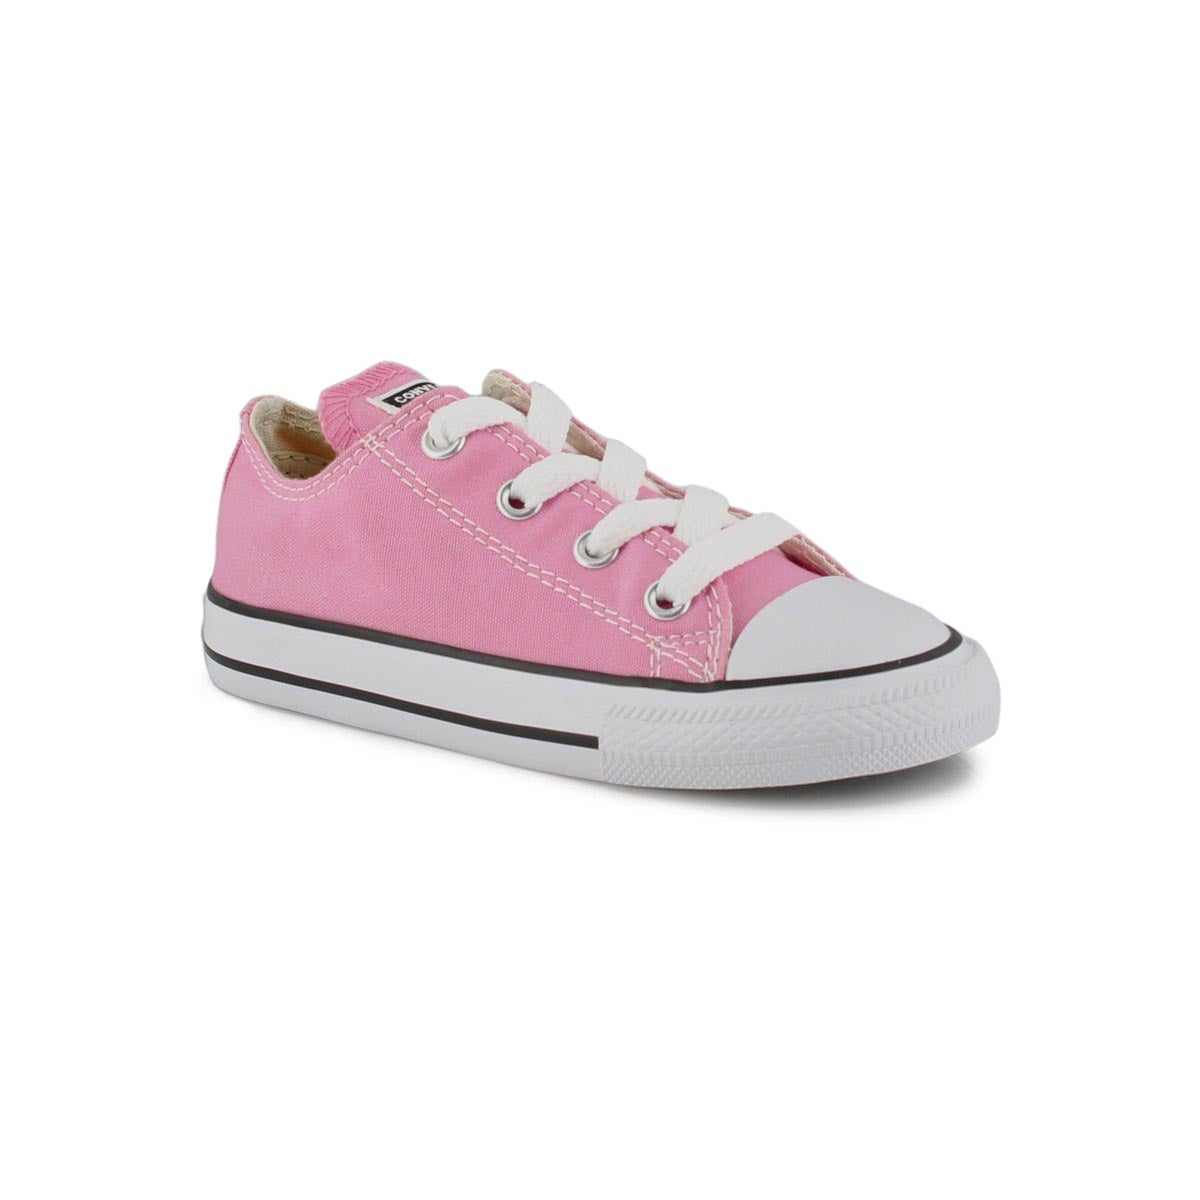 Infants' CHUCK TAYLOR ALL STAR pink sneakers